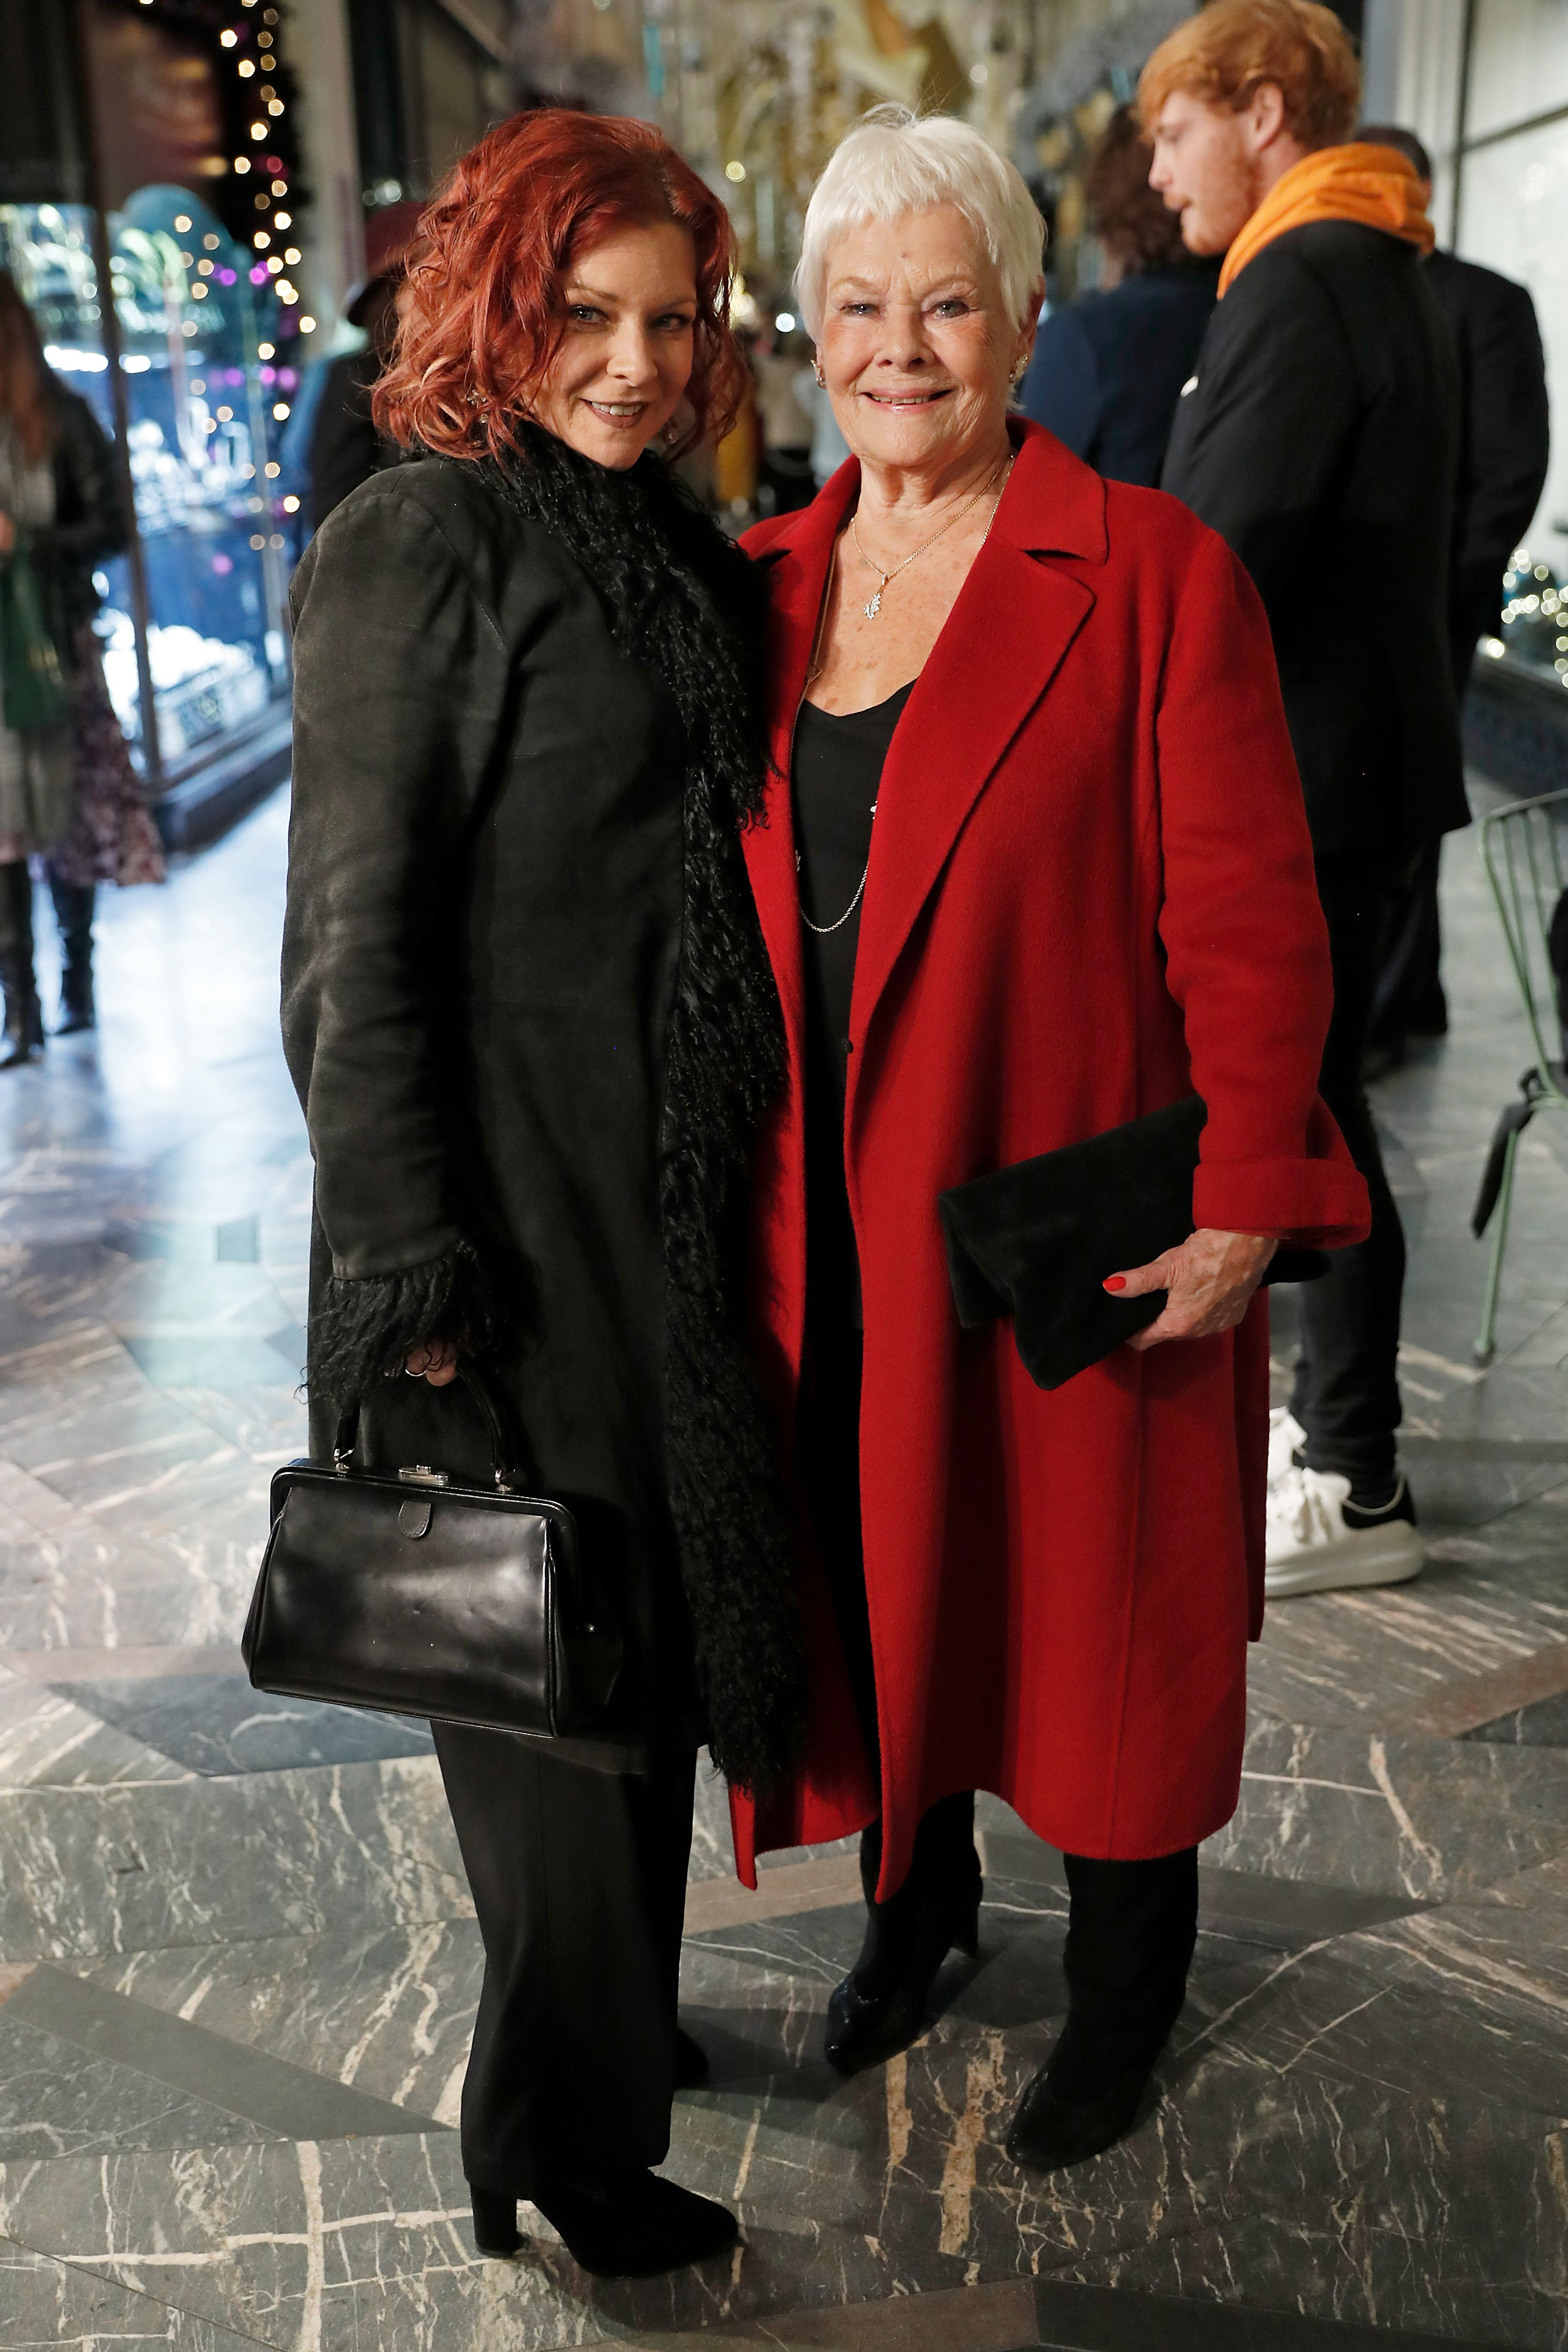 Judi Dench and her daughter, actress Finty Williams, at the event celebrating the 200th Burlington Christmas in 2019 in London, England | Source: Getty Images